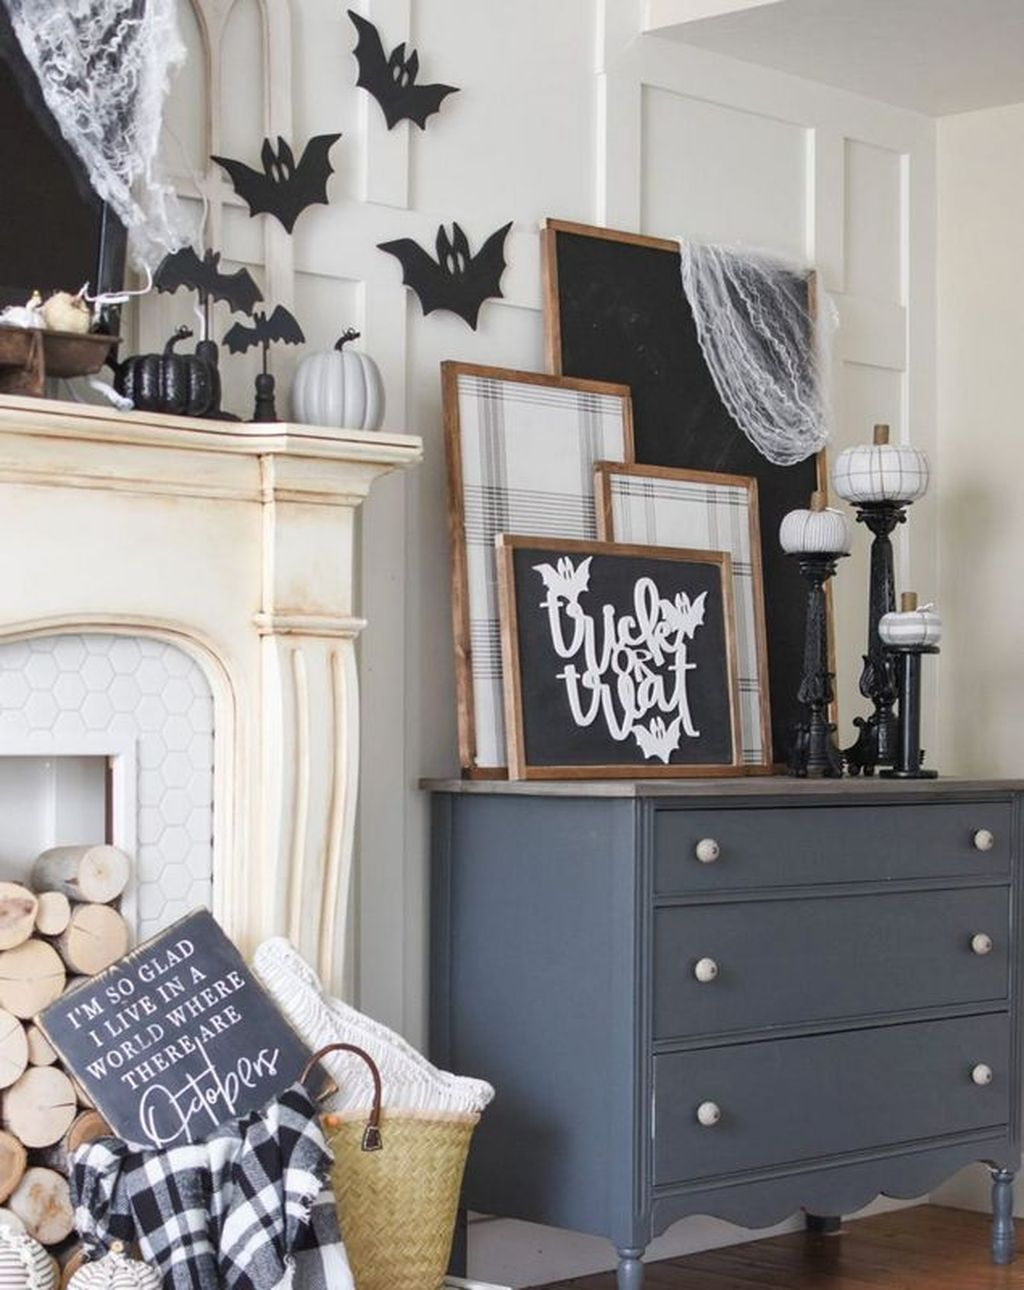 Stunning Black And White Halloween Decor Ideas For Your Home 13